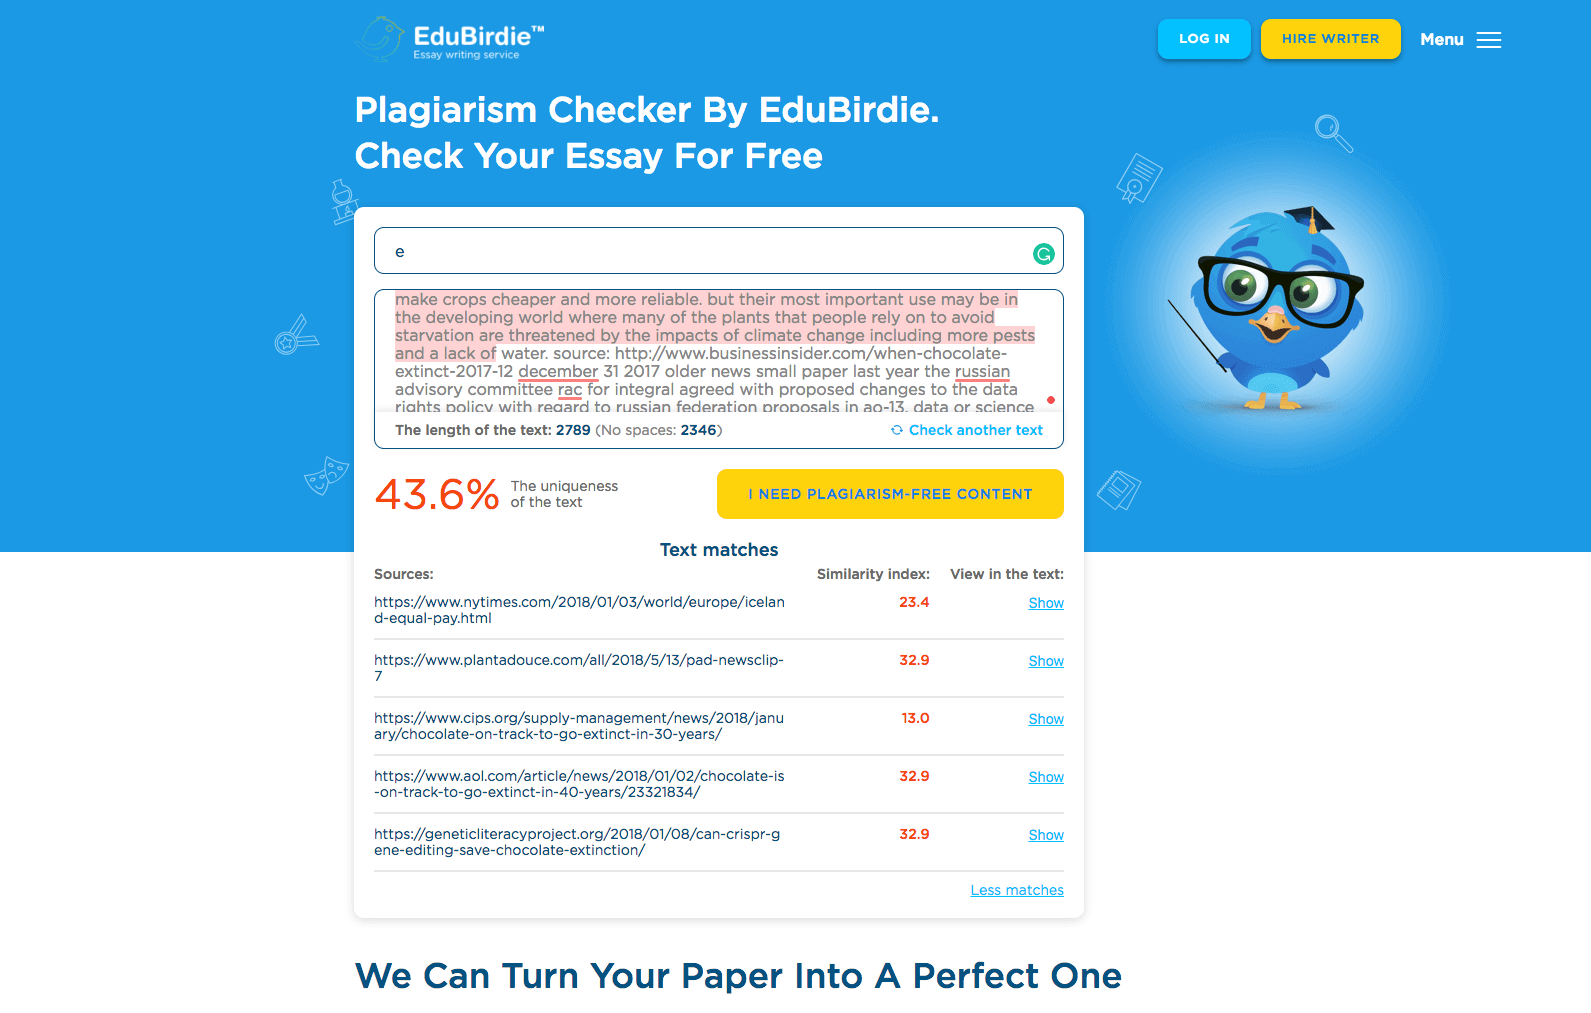 024 Essay Plagiarism Checker Example Unforgettable Reddit Ieee Paper University Full